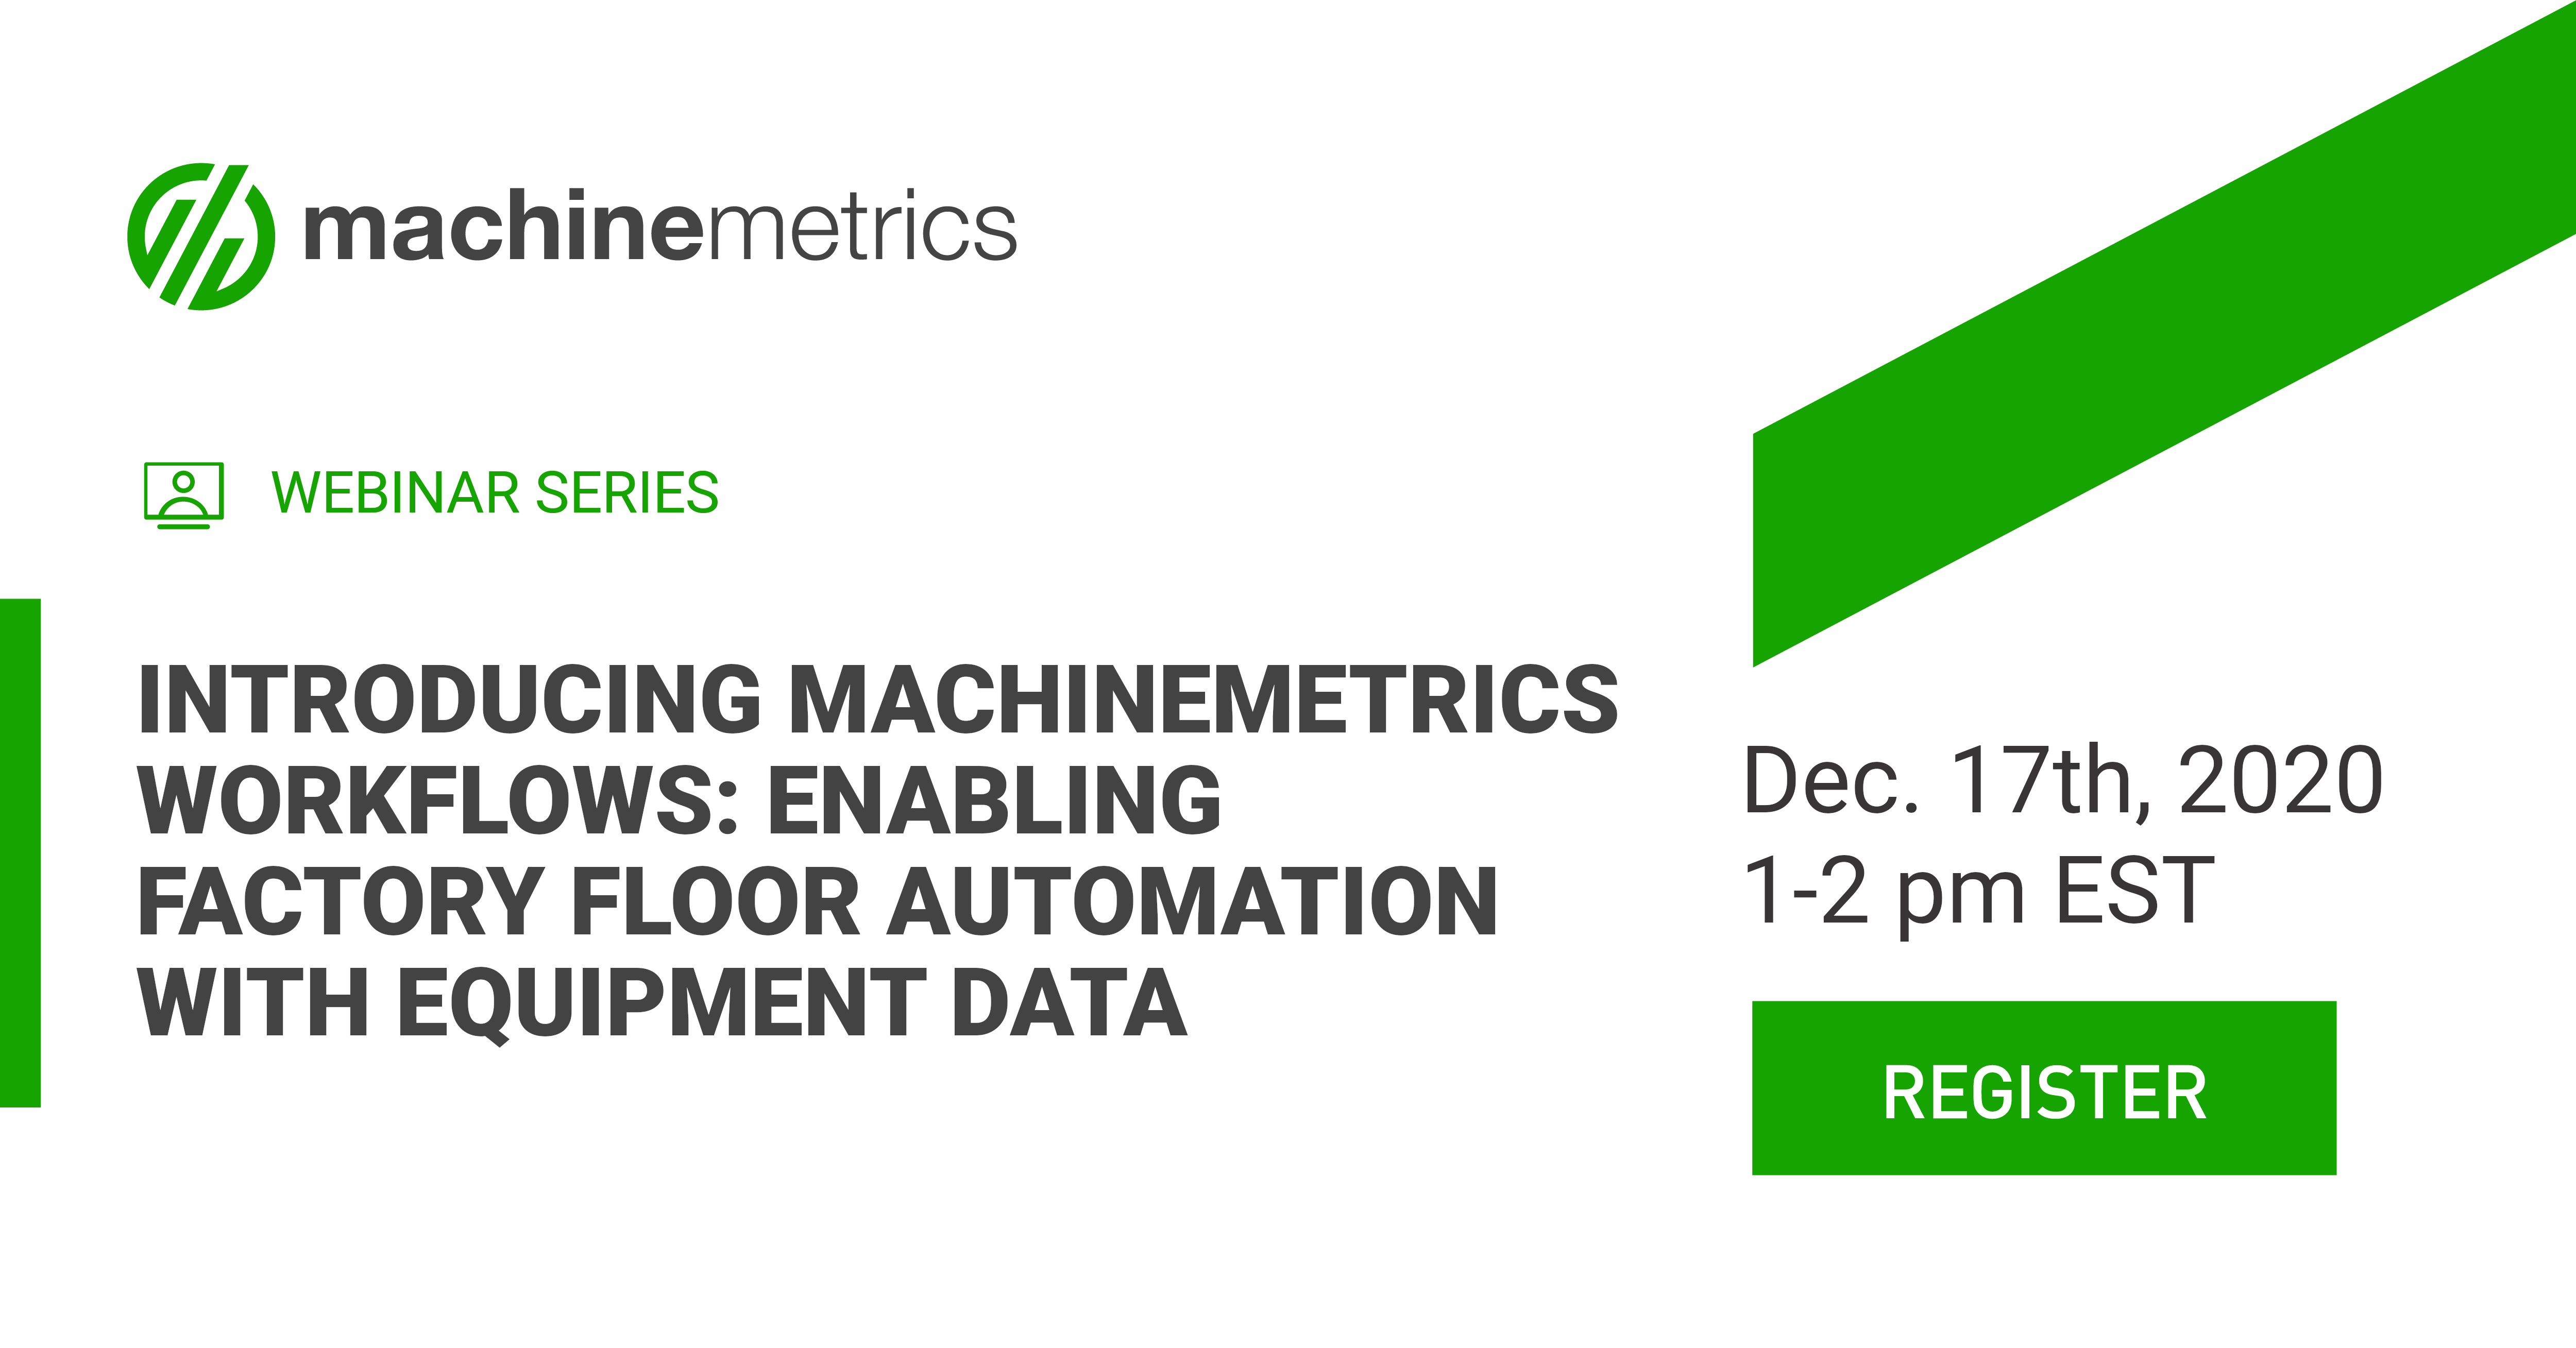 Introducing MachineMetrics Workflows: Enabling Factory Floor Automation with Equipment Data